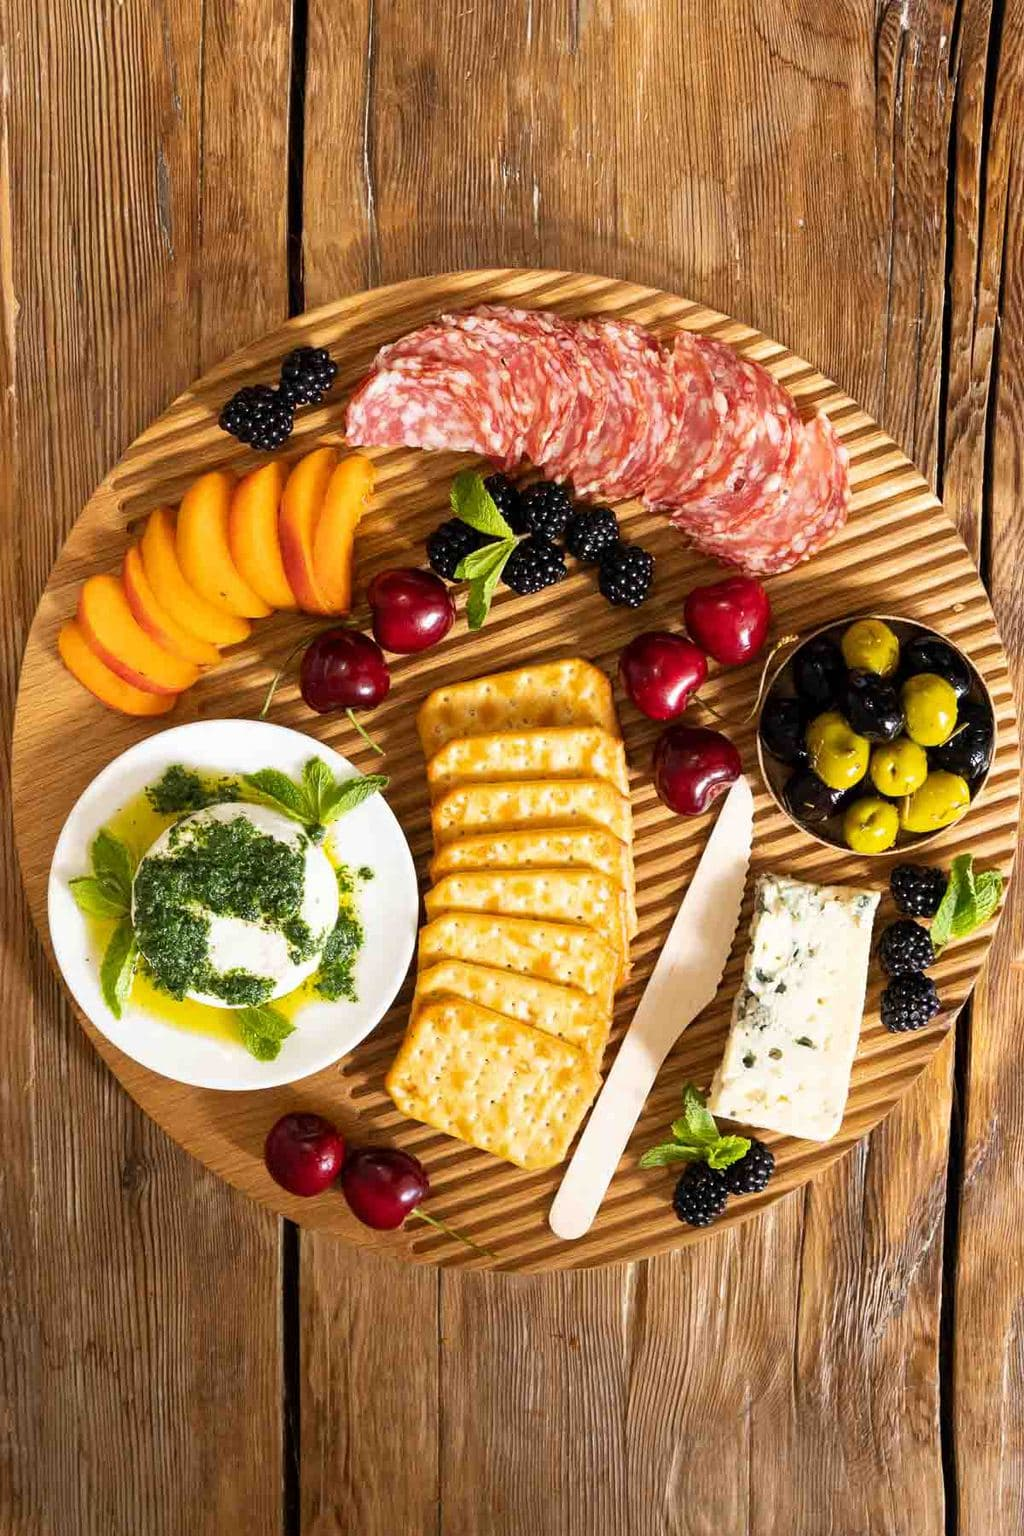 Horizontal overhead photo of a round wood charcuterie board featuring Italian Mint Pesto over goat cheese with crackers, cheeses, fruit, olives and sausage on a wood surface.